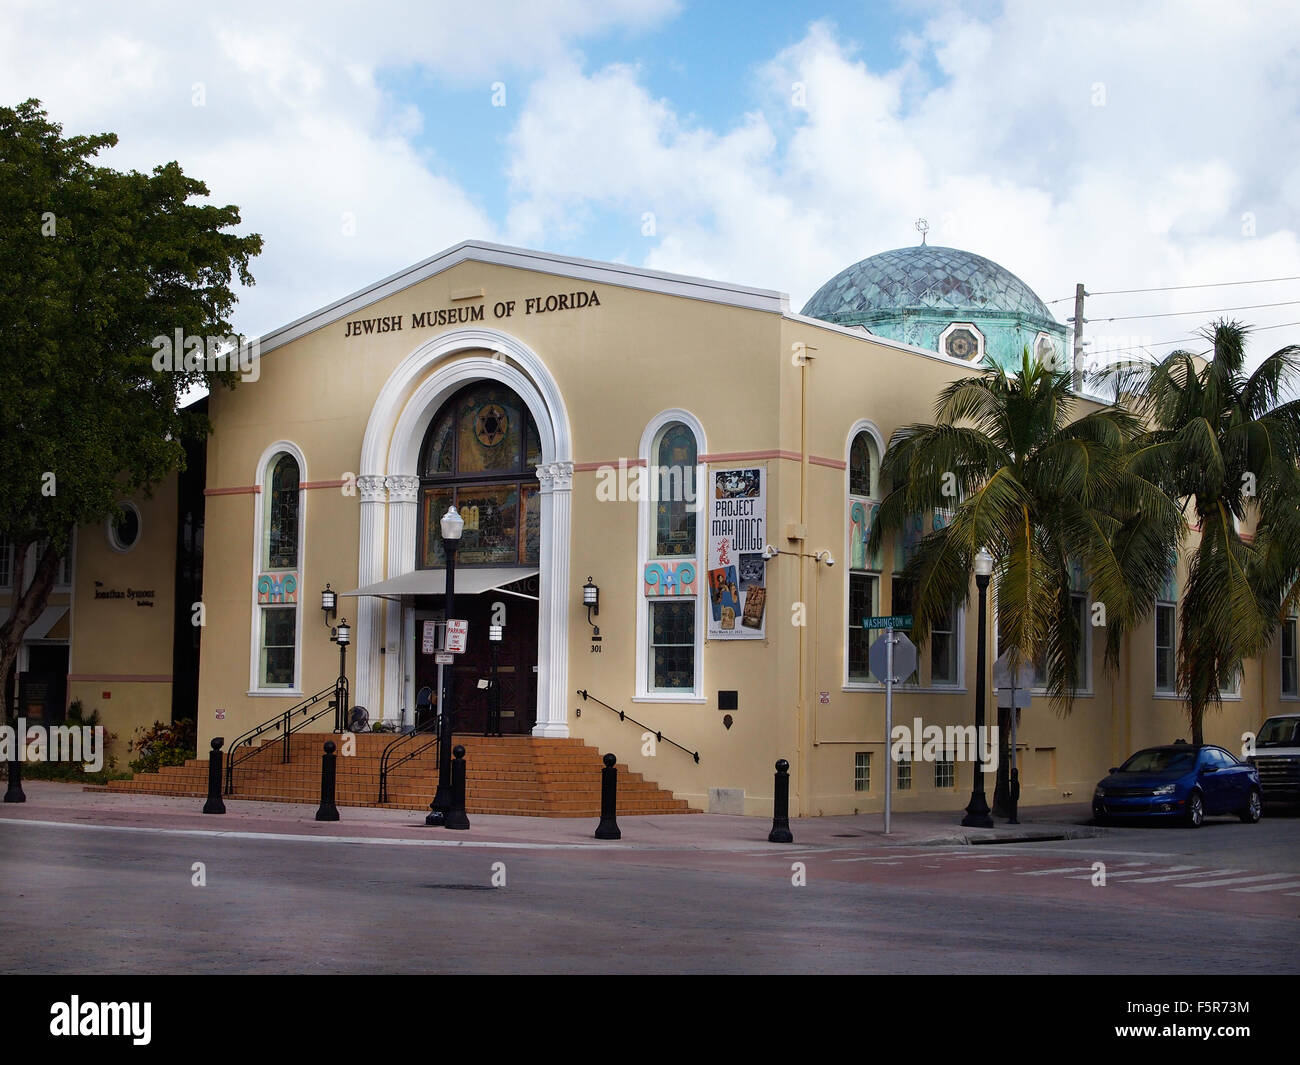 MIAMI, FLORIDA - NOVEMBER 11, 2012: The Jewish Museum of Florida, on Washington Ave. in the South Beach section Stock Photo